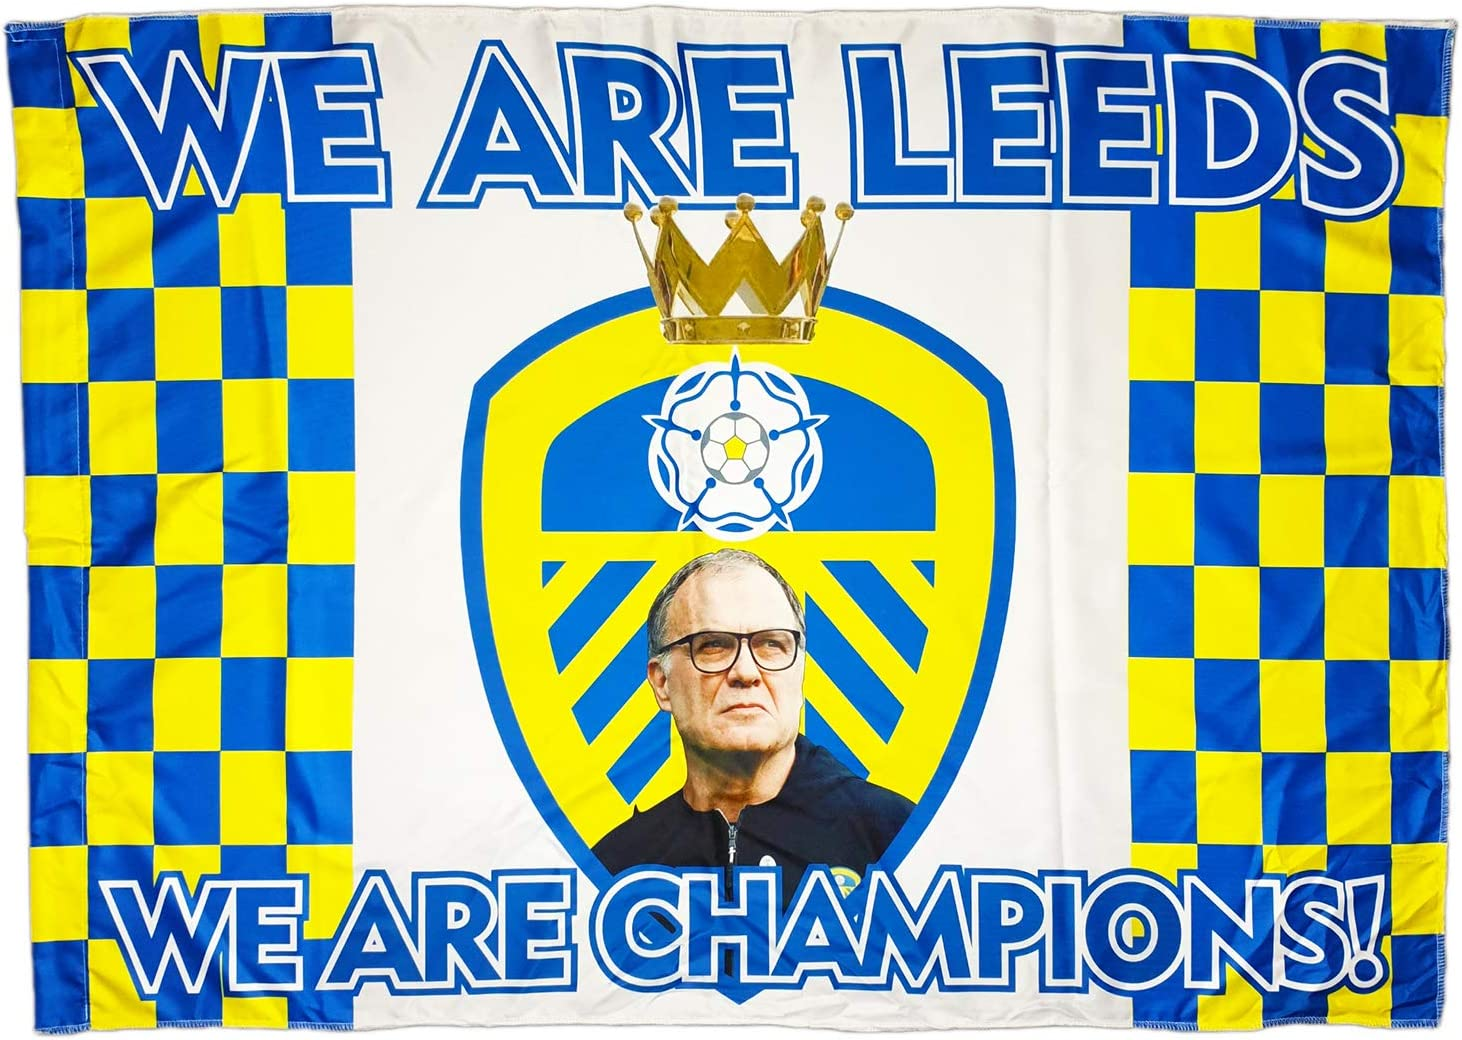 MDEO LEEDS Champions FLAG 2019-2020 Marcelo Bielsa and Stars We Are PREMIER